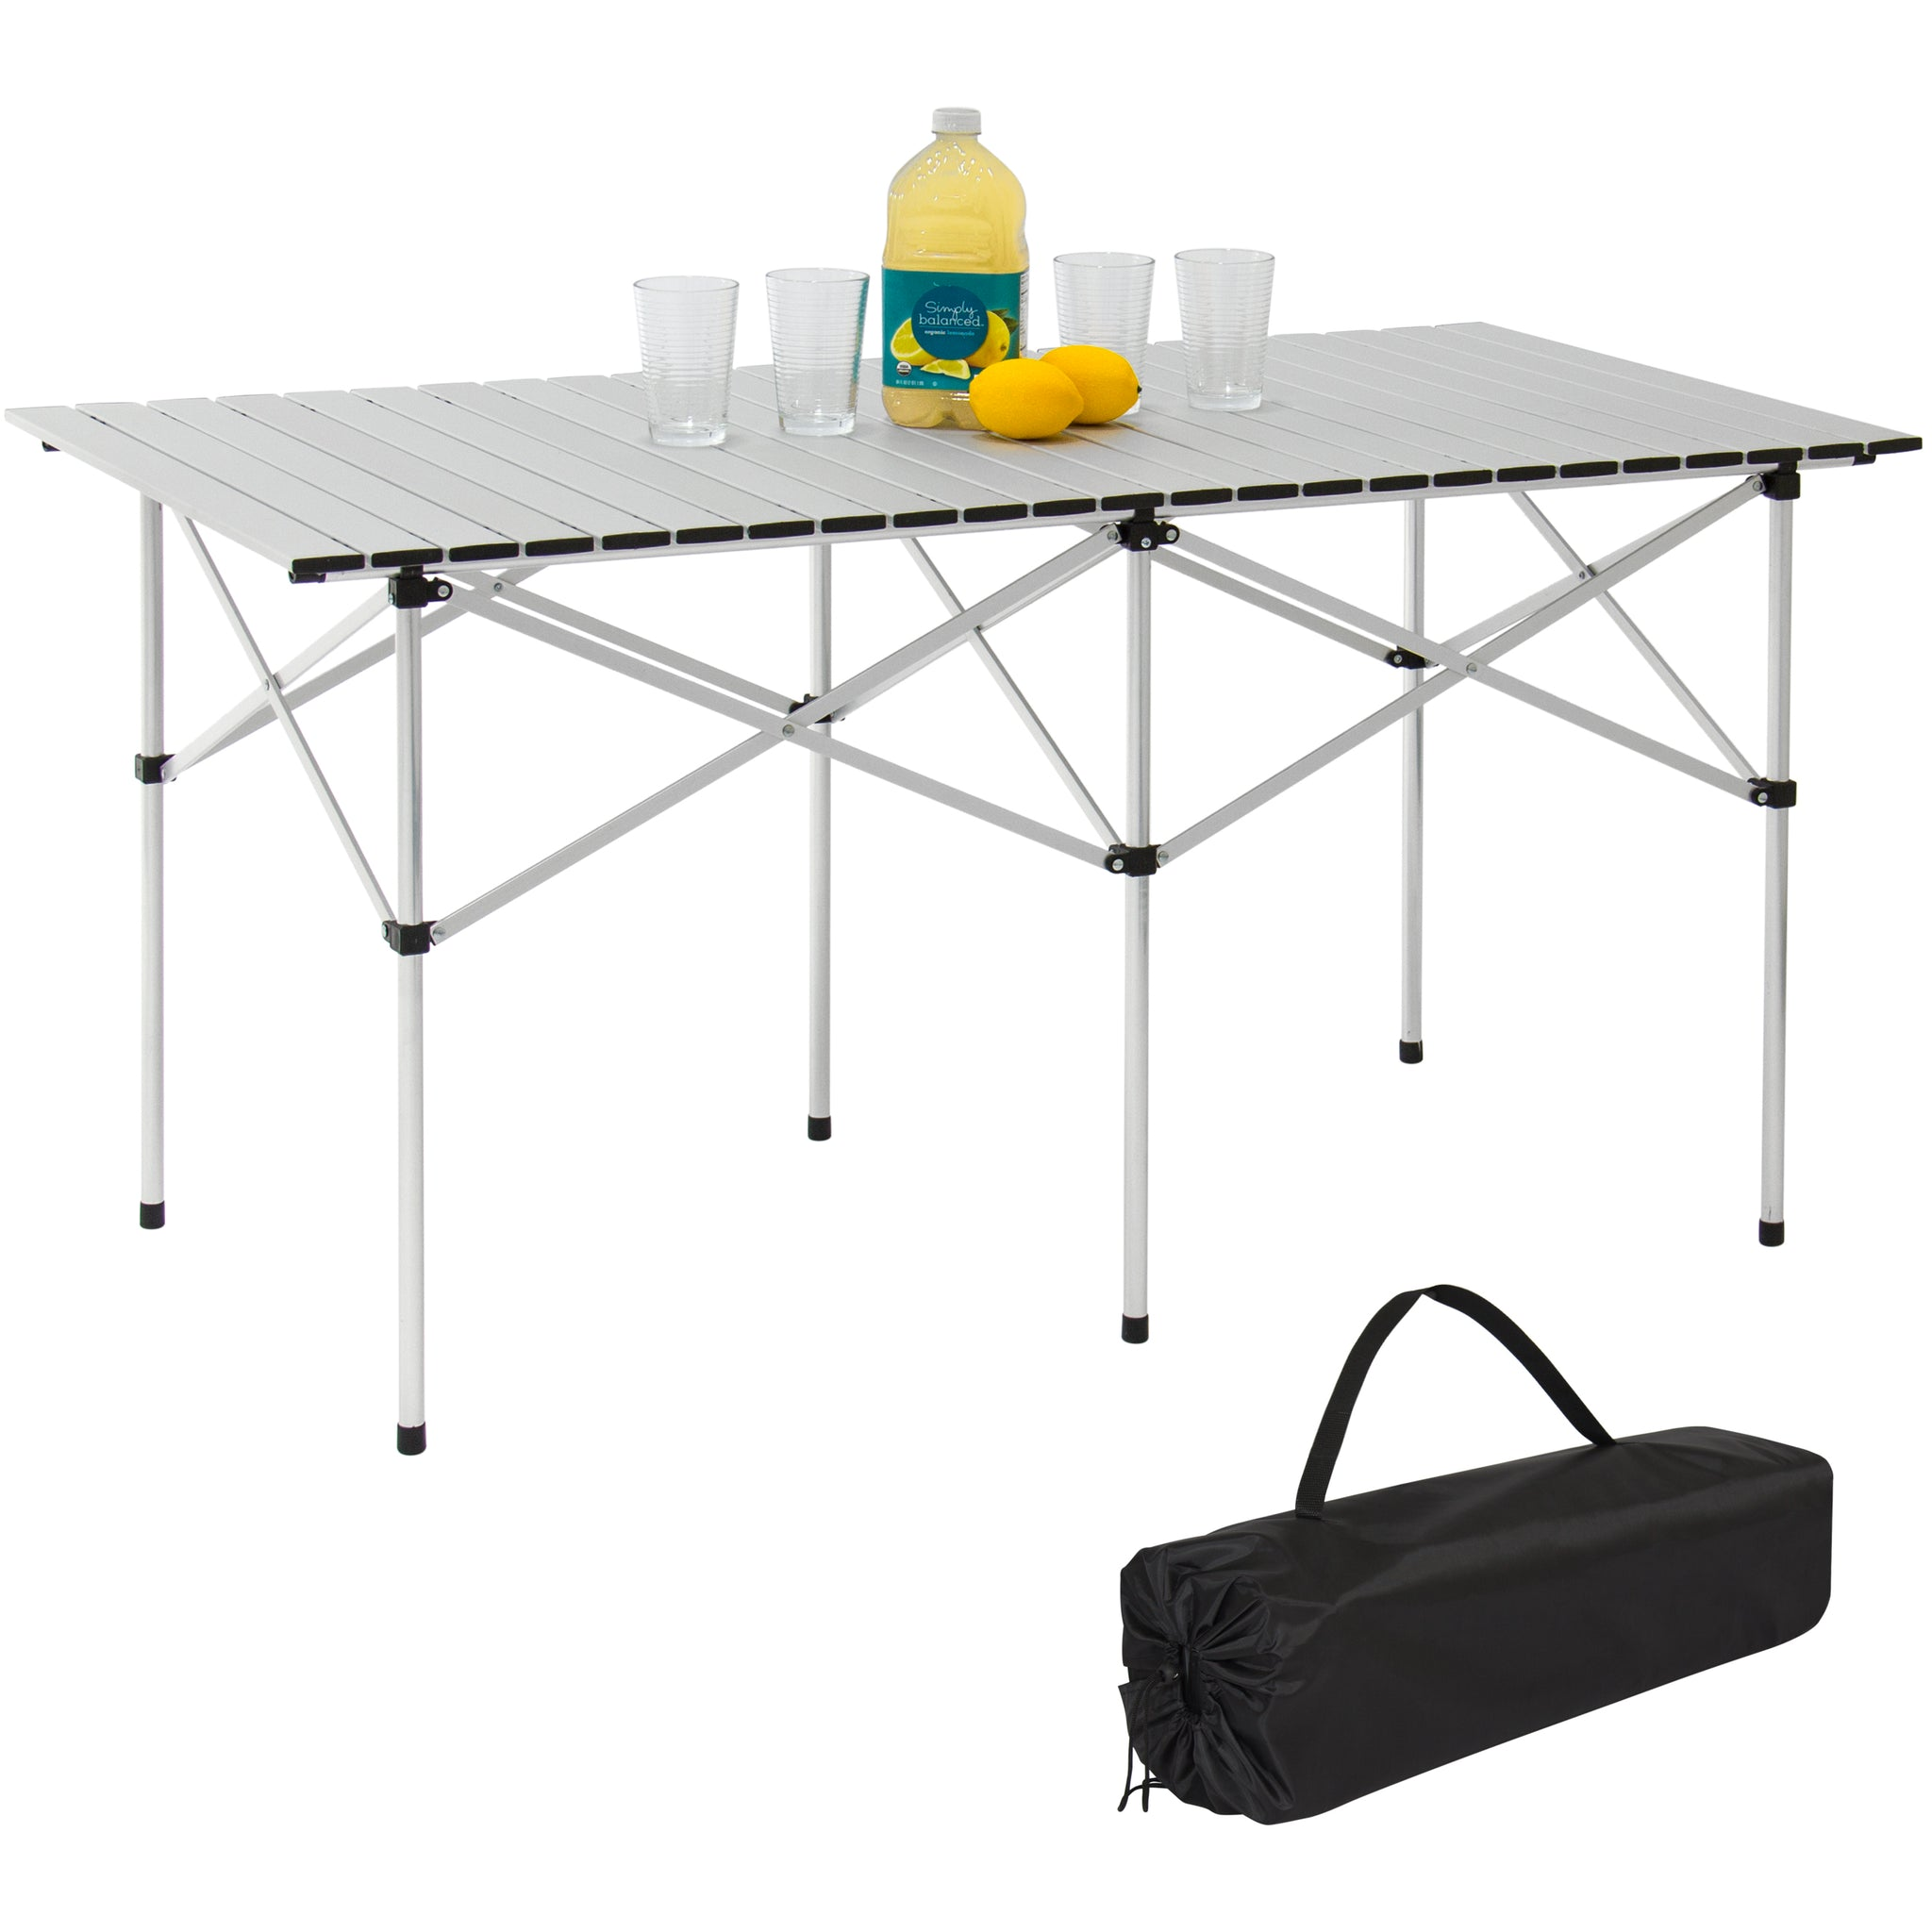 55in Portable Camping Picnic Table W/ Carrying Bag   Silver